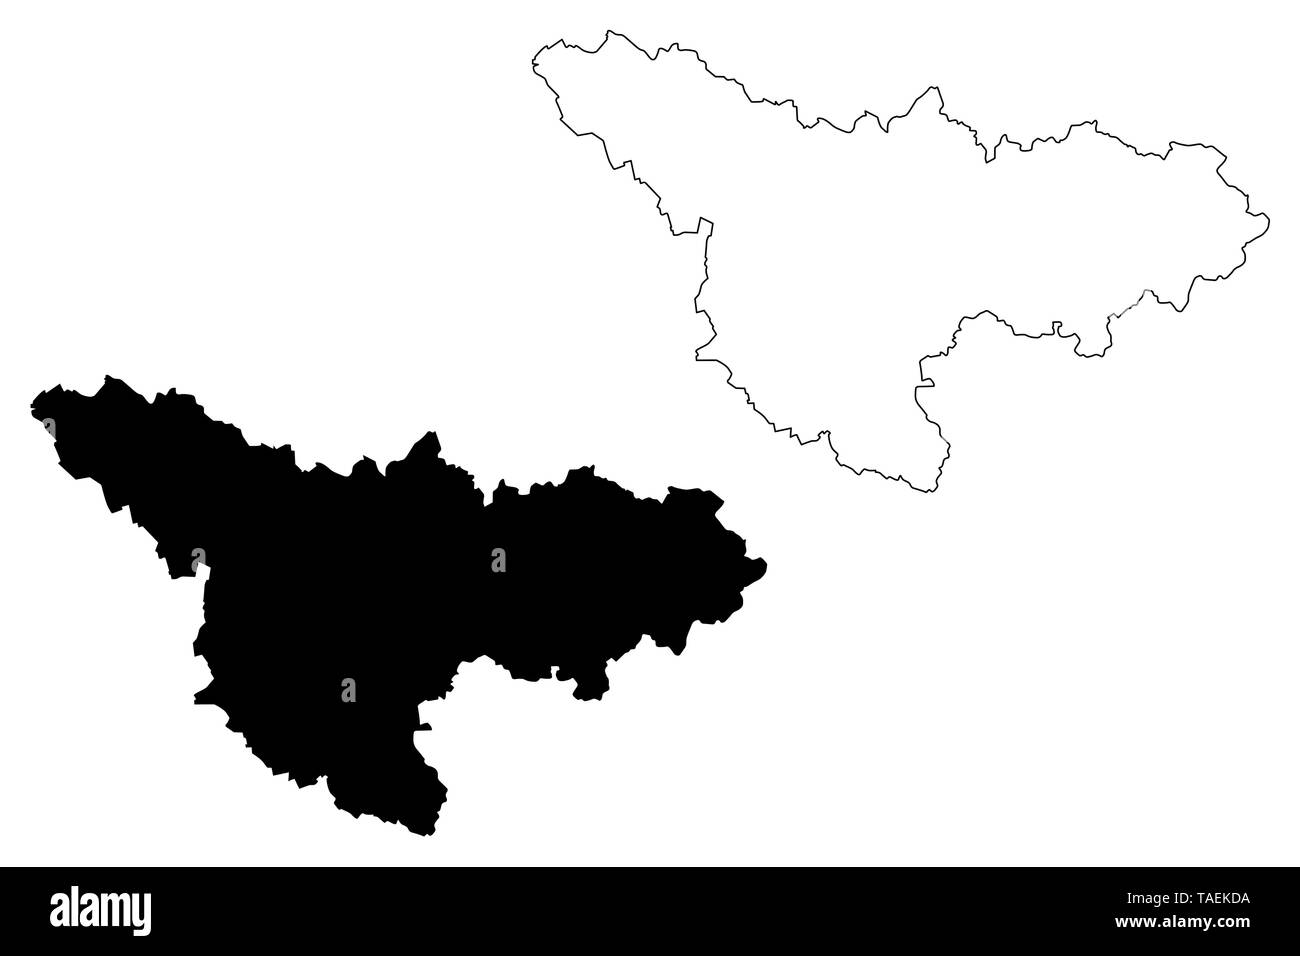 Timis County (Administrative divisions of Romania, Vest development region) map vector illustration, scribble sketch Timis map - Stock Image